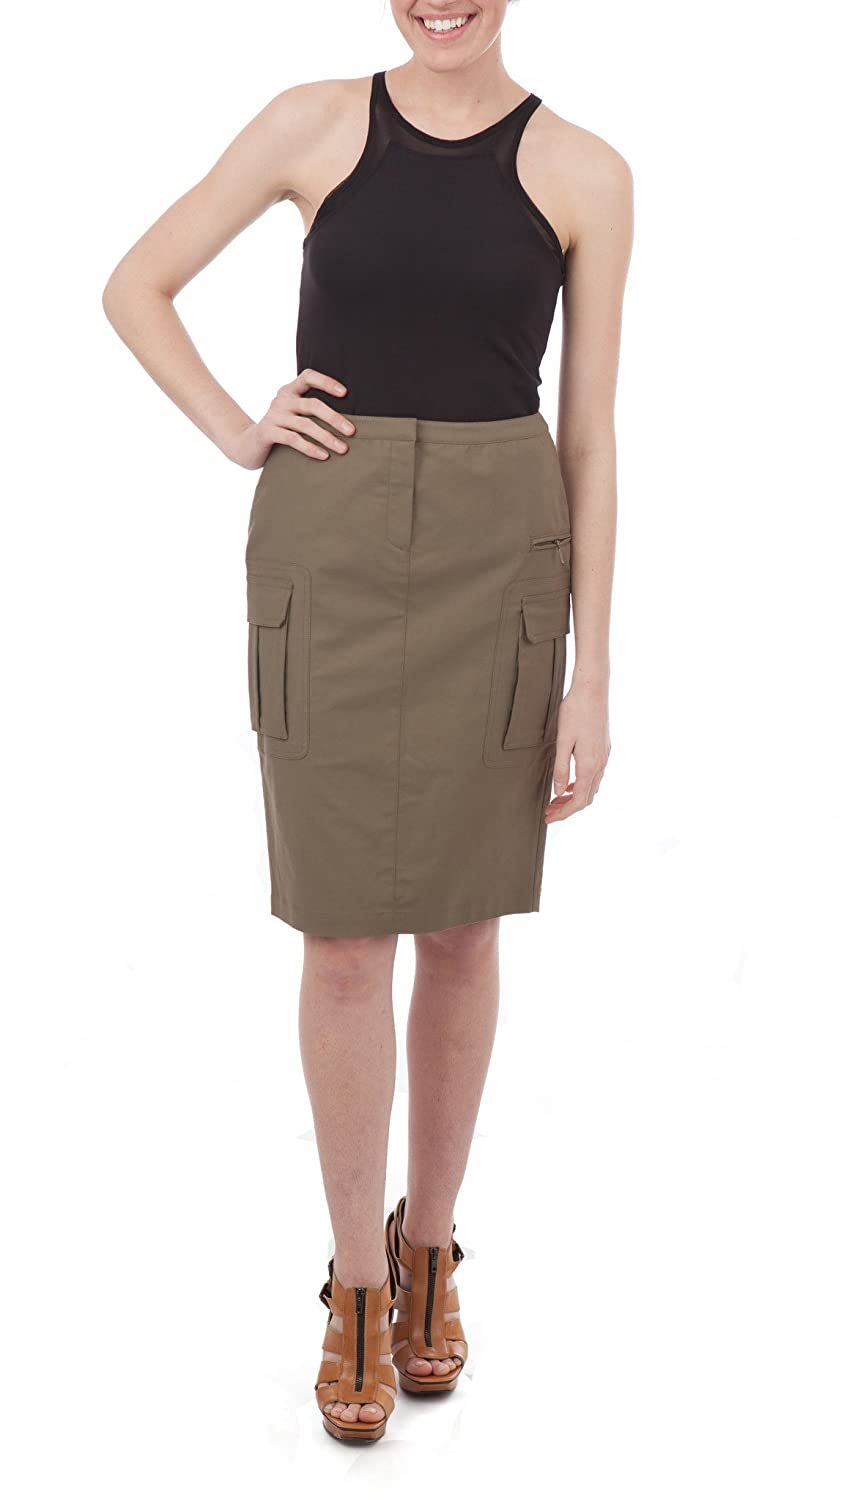 d02f40525 Lafayette 148 New York Cargo Pencil Skirt, Olive Green, 0 at Amazon Women's  Clothing store: